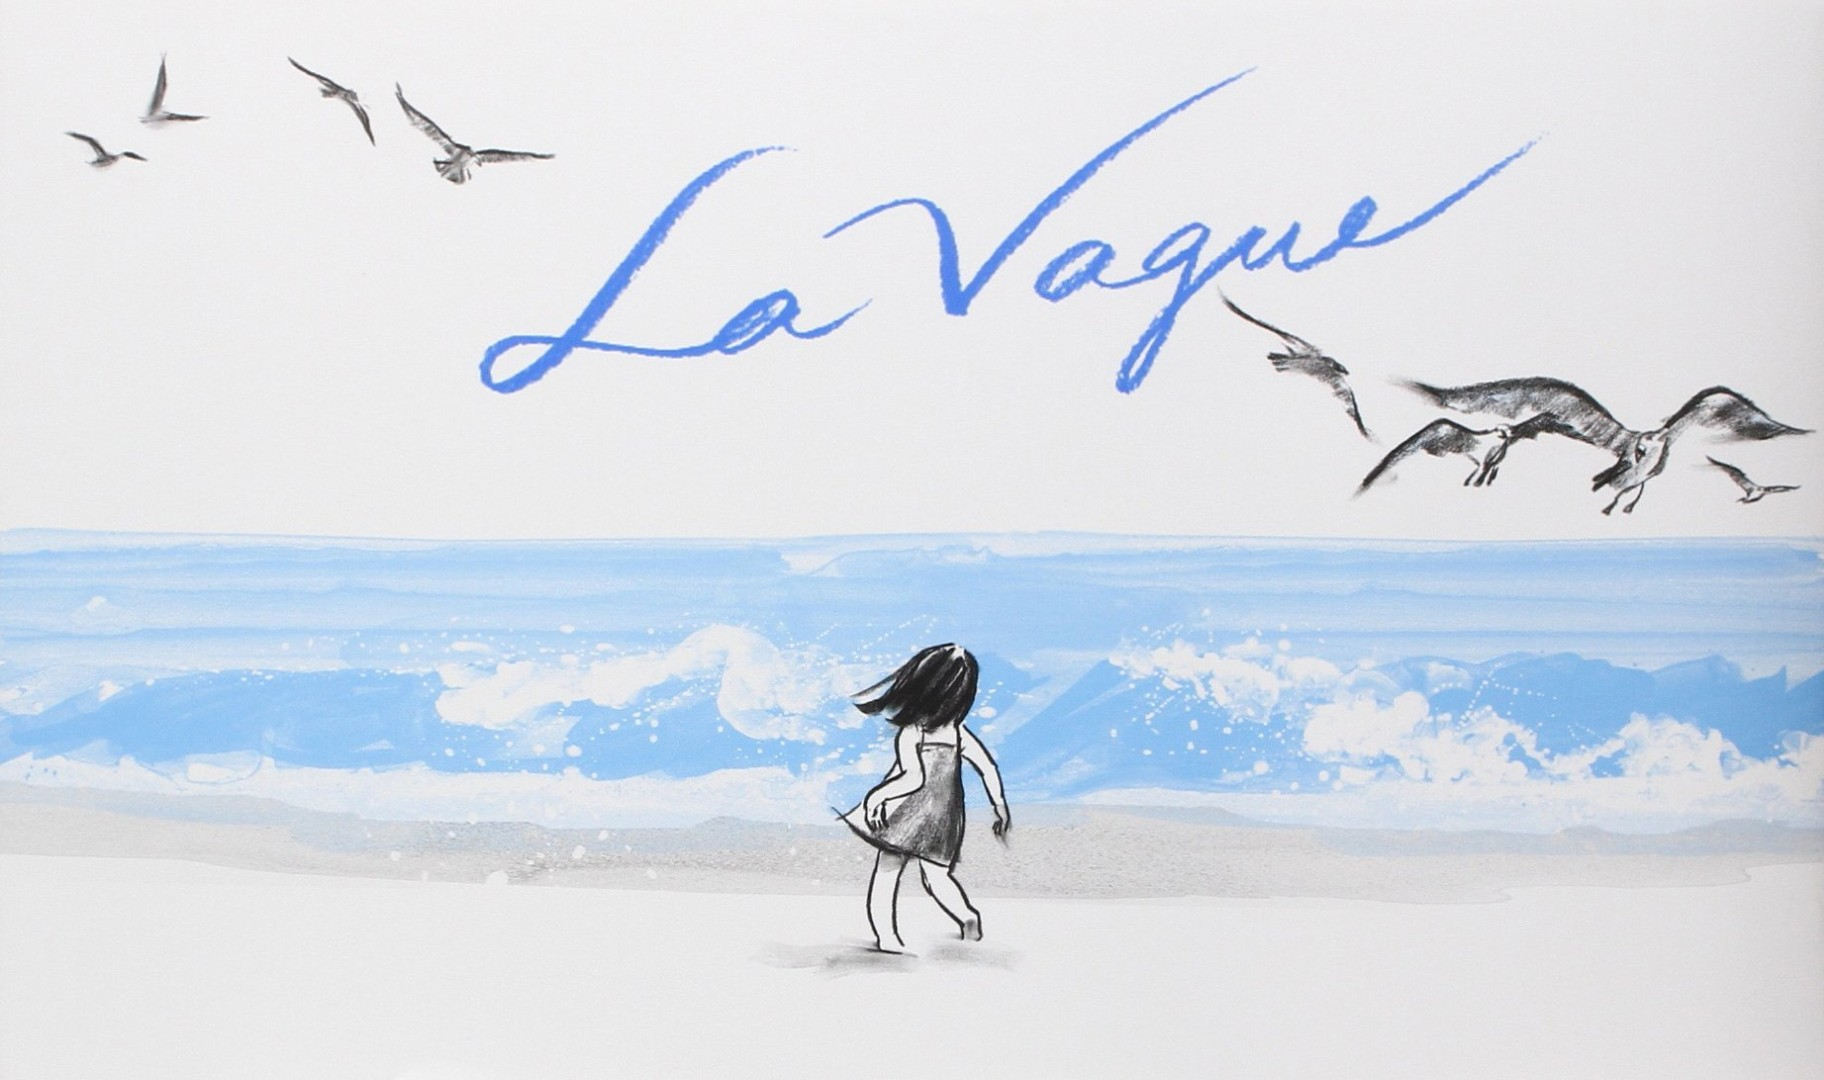 La vague - Suzy Lee